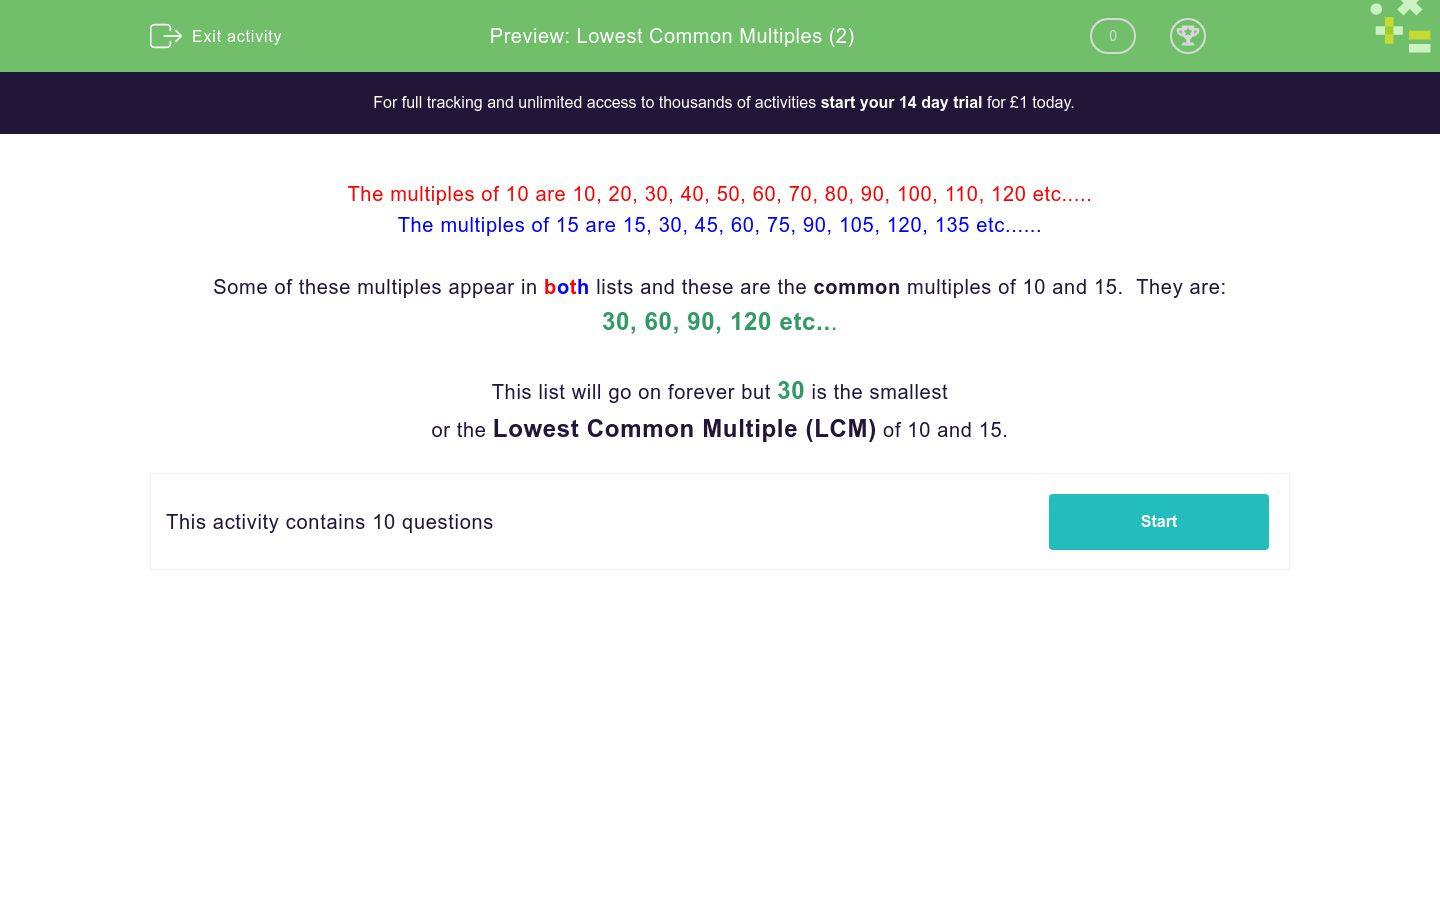 'Lowest Common Multiples (2)' worksheet